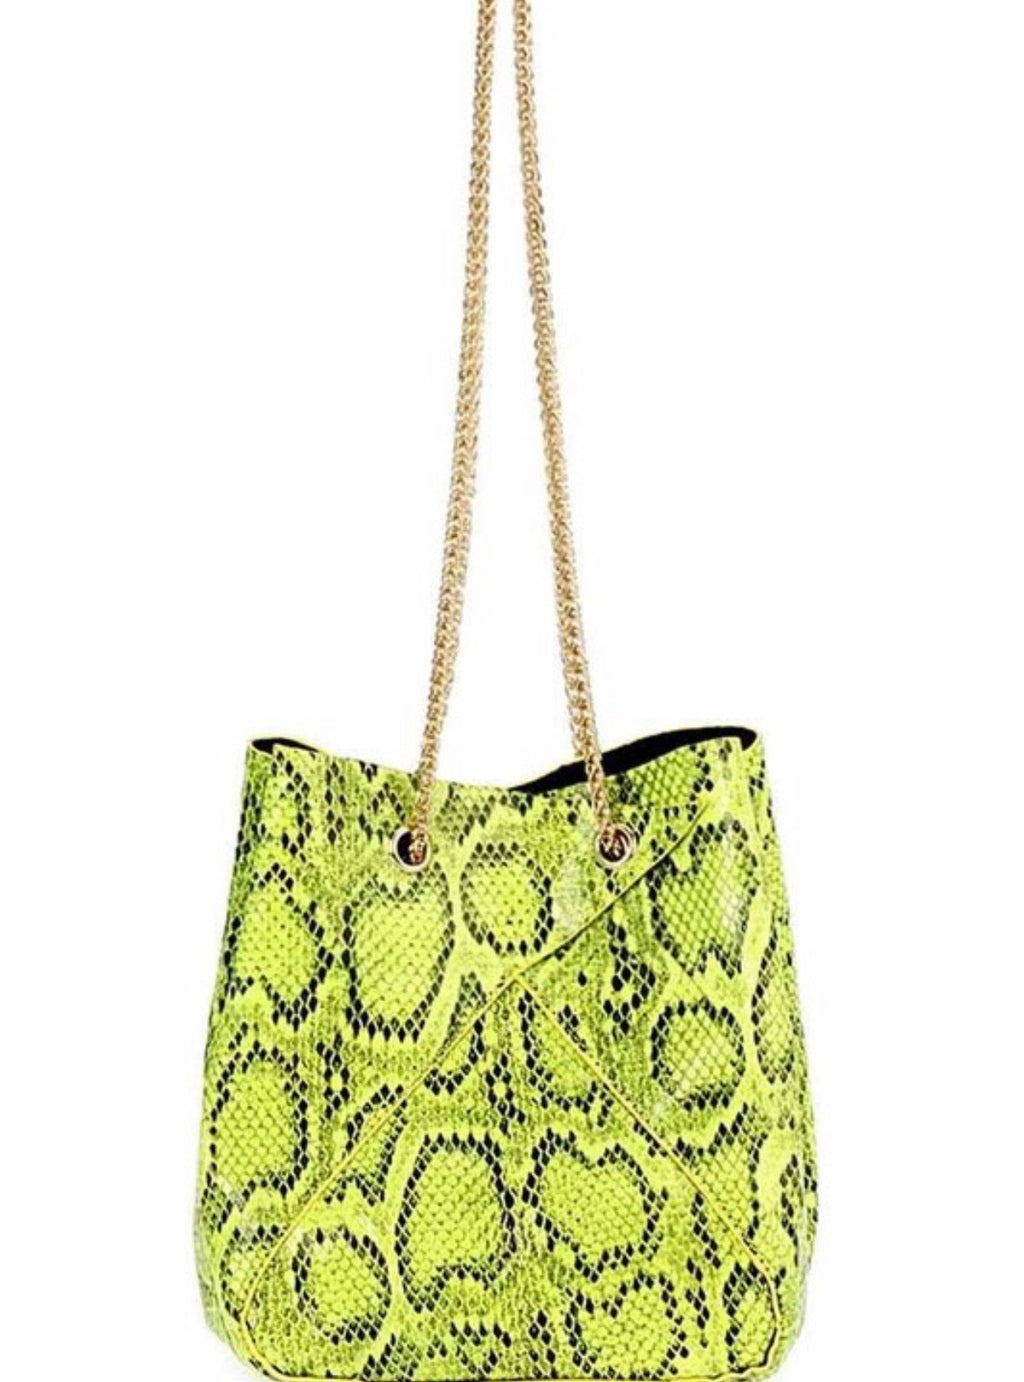 Lime Green Snakeskin handbag